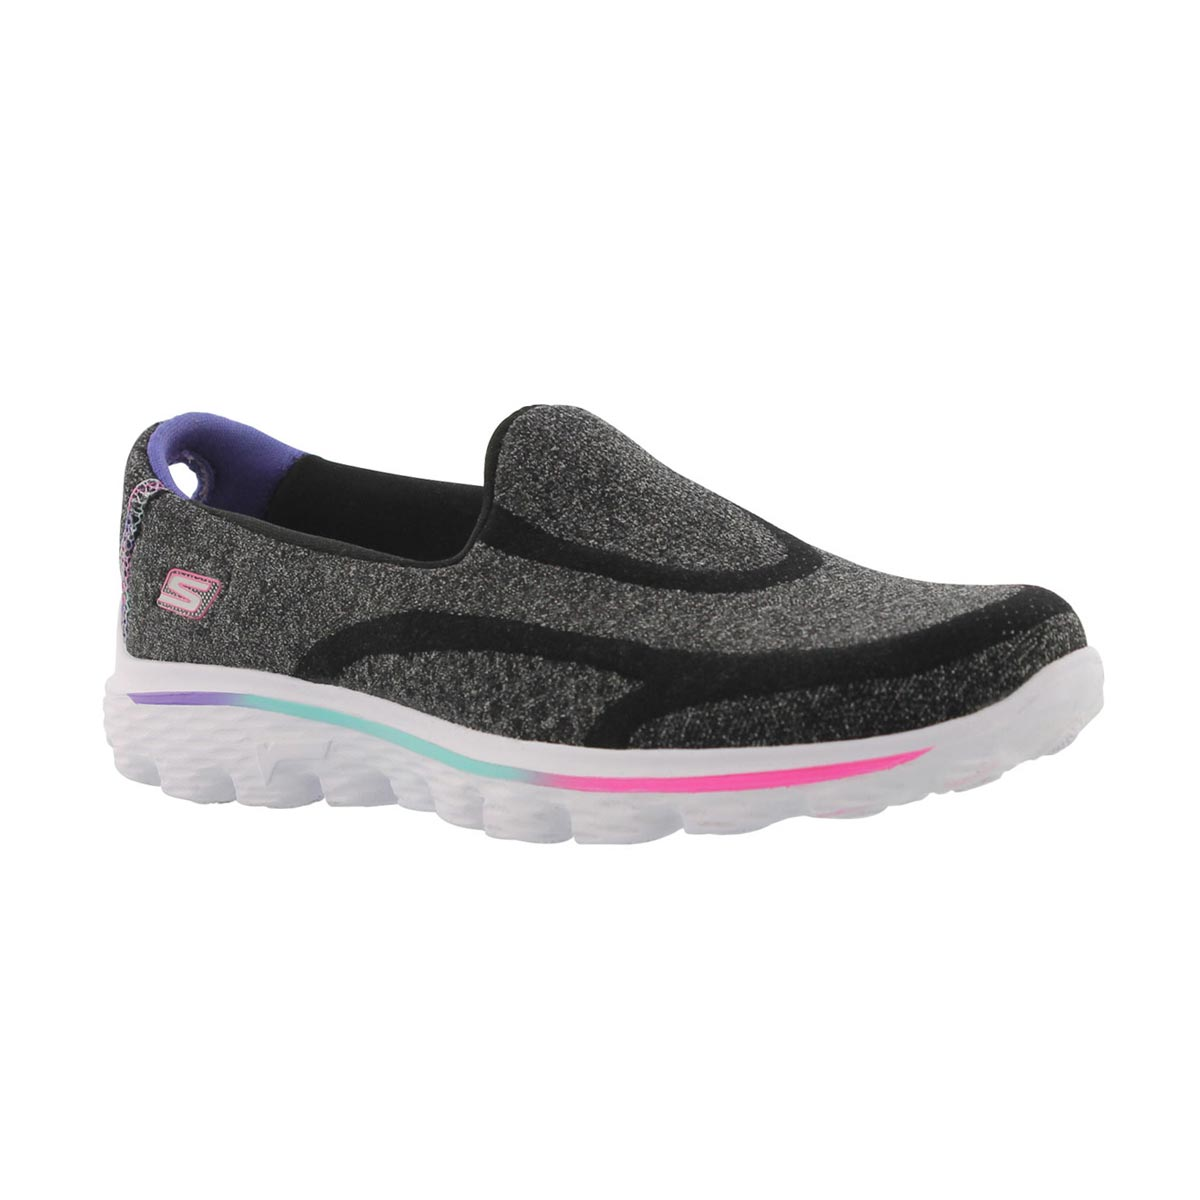 Girls' GOwalk 2 SUPER SOCK black slip ons